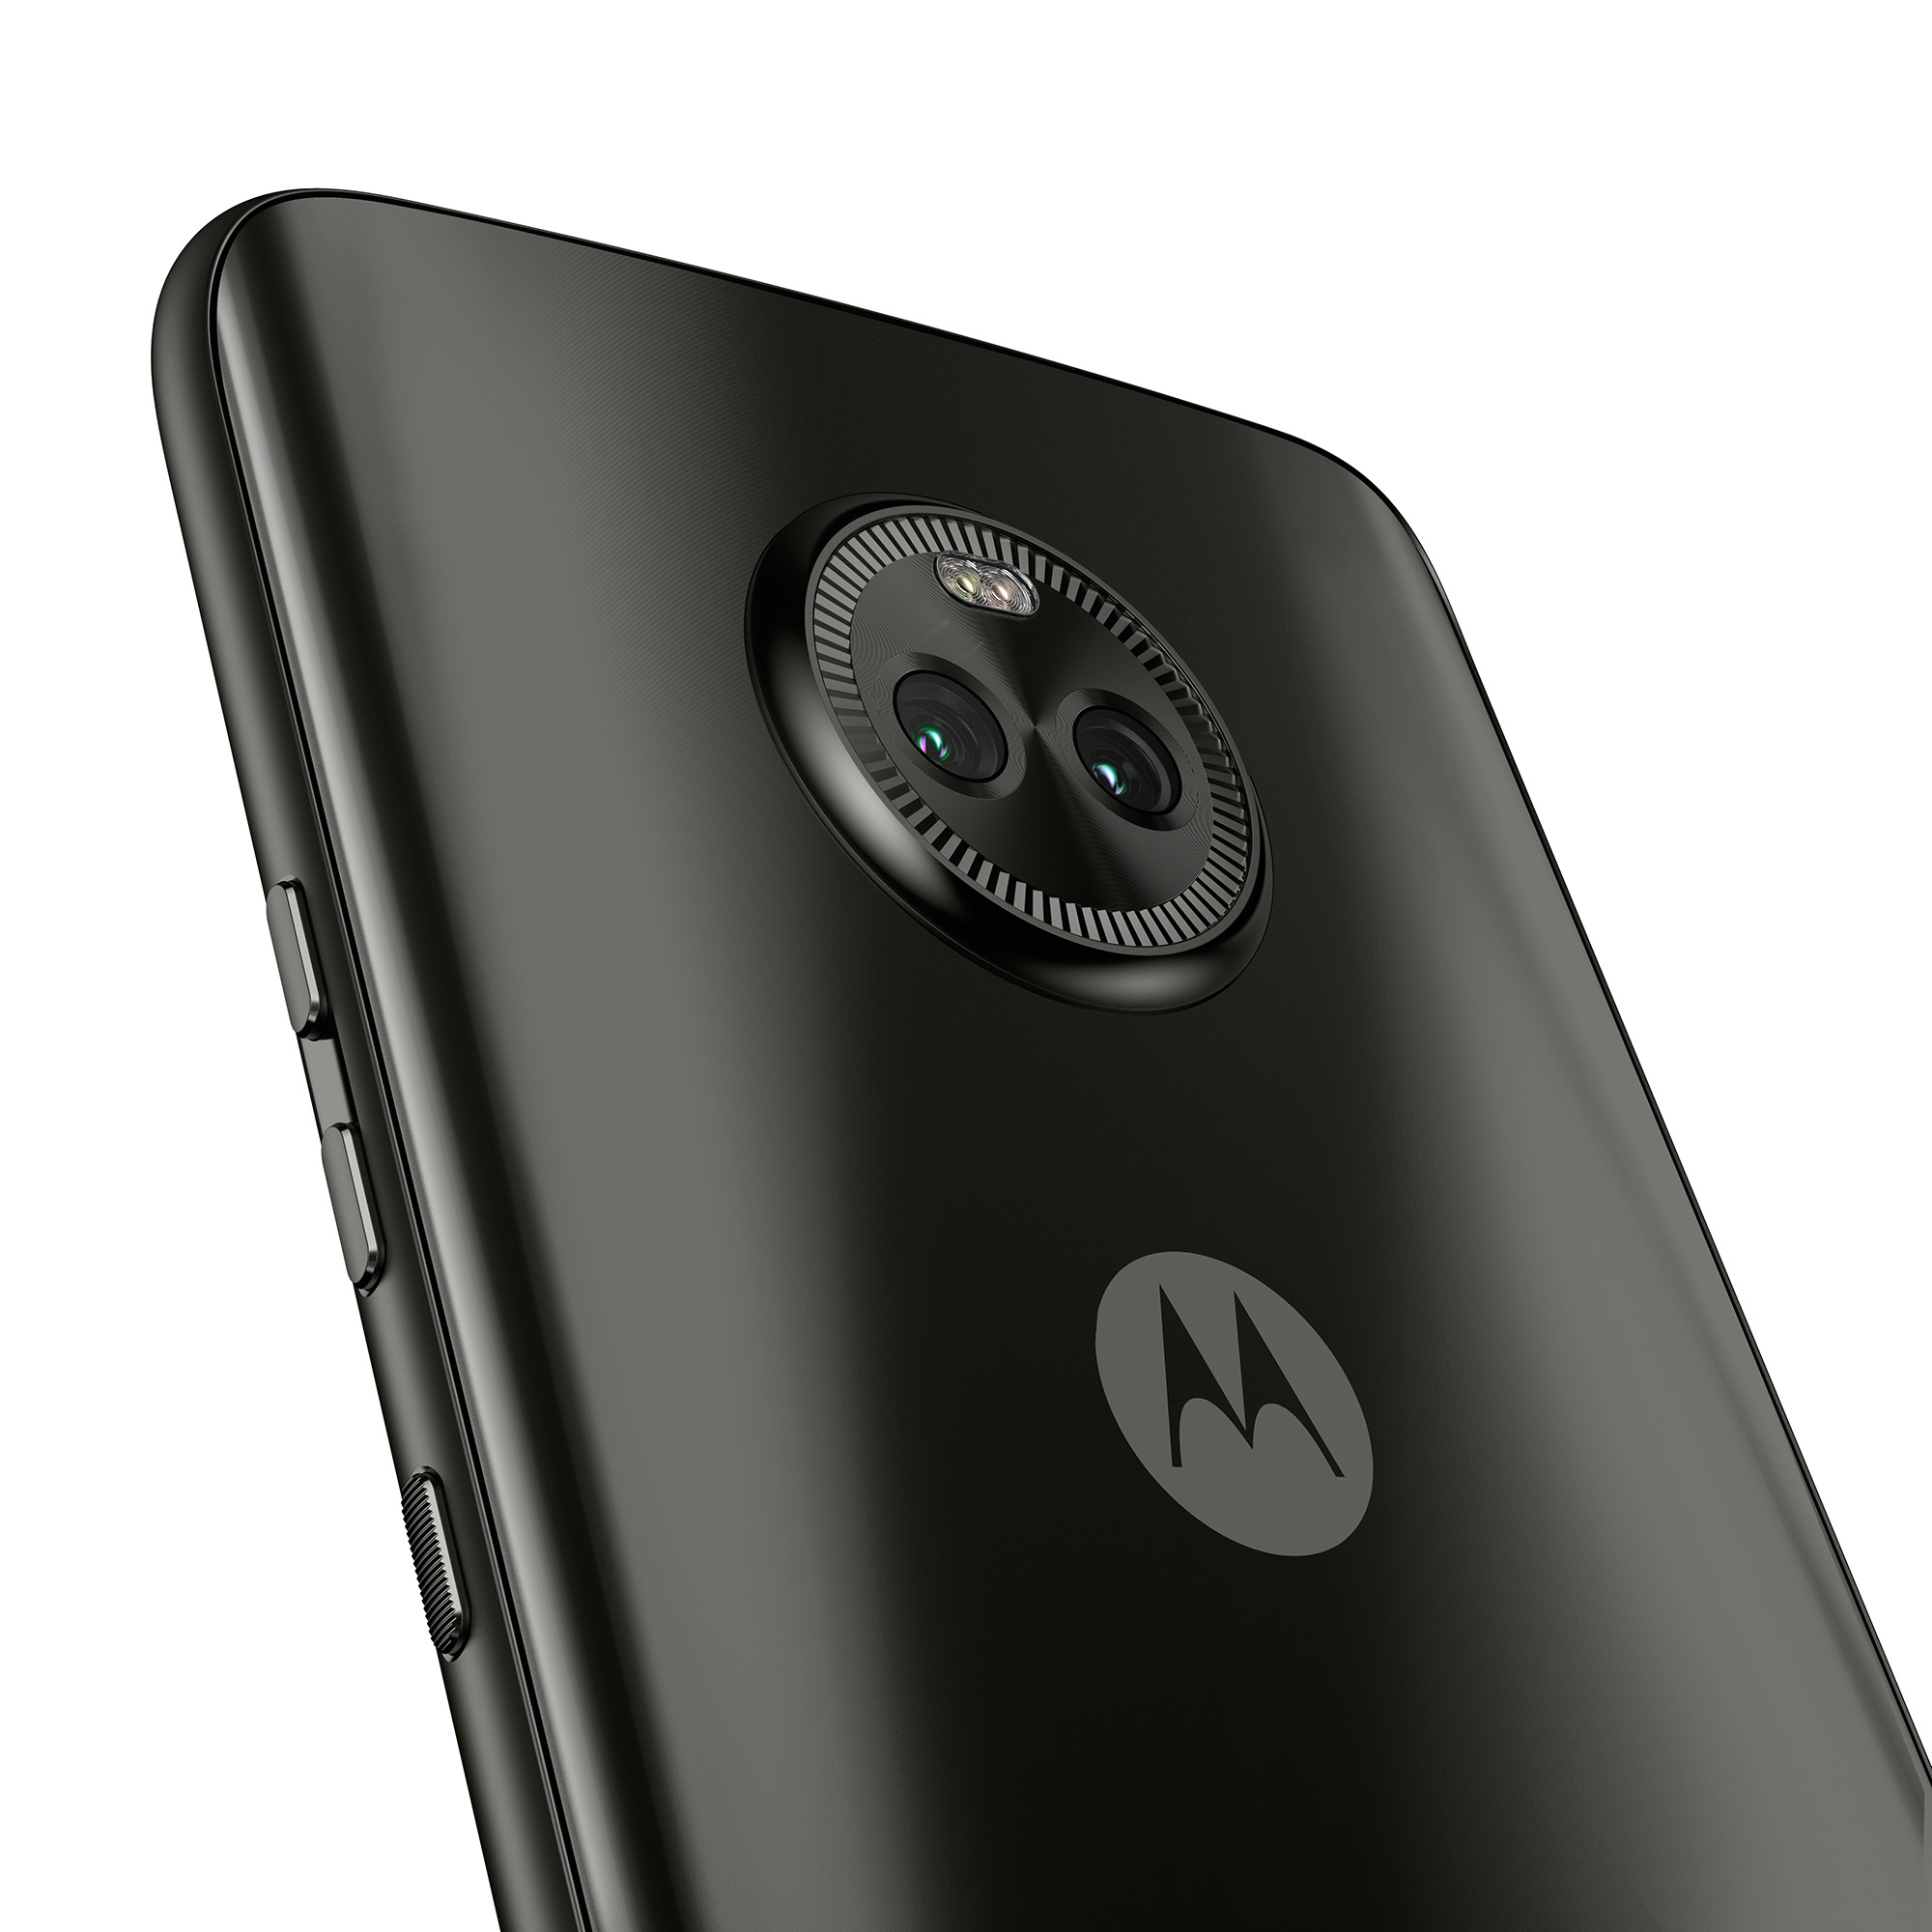 Moto X4 Camera IFA 2017: Moto Goes After Value Market With New X4